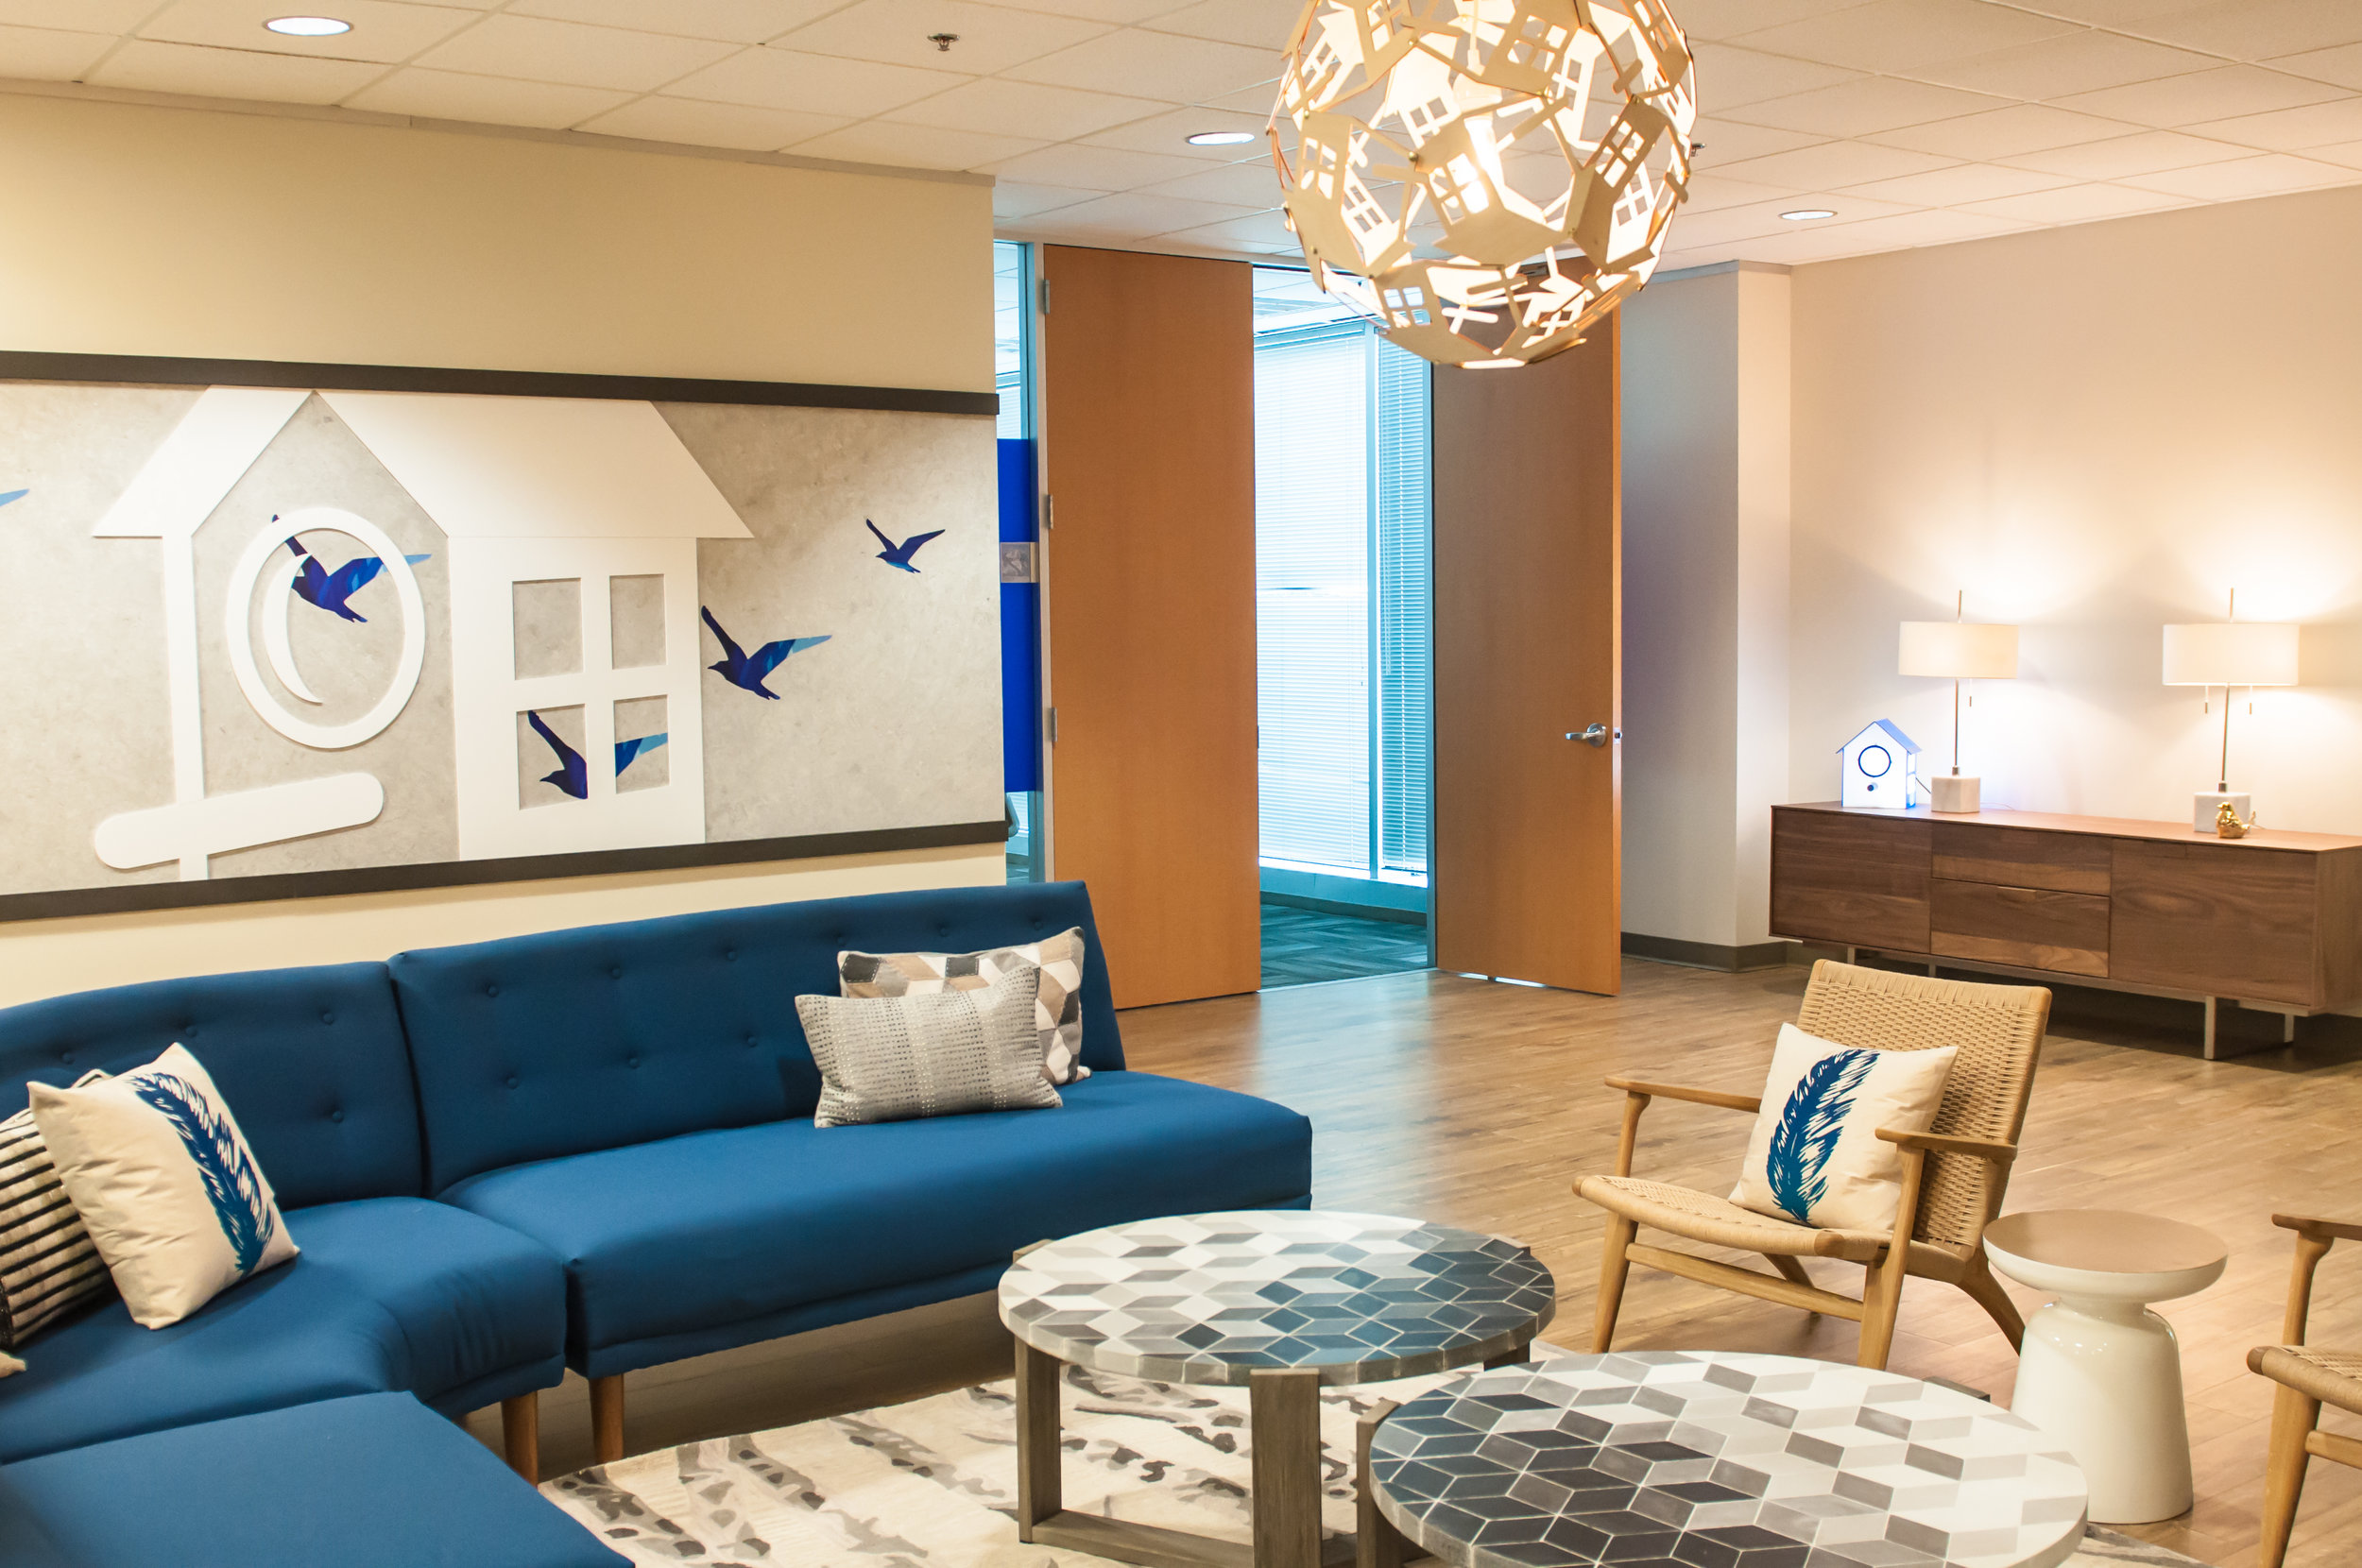 Homeaway Customer Service Center — Architectural Squared